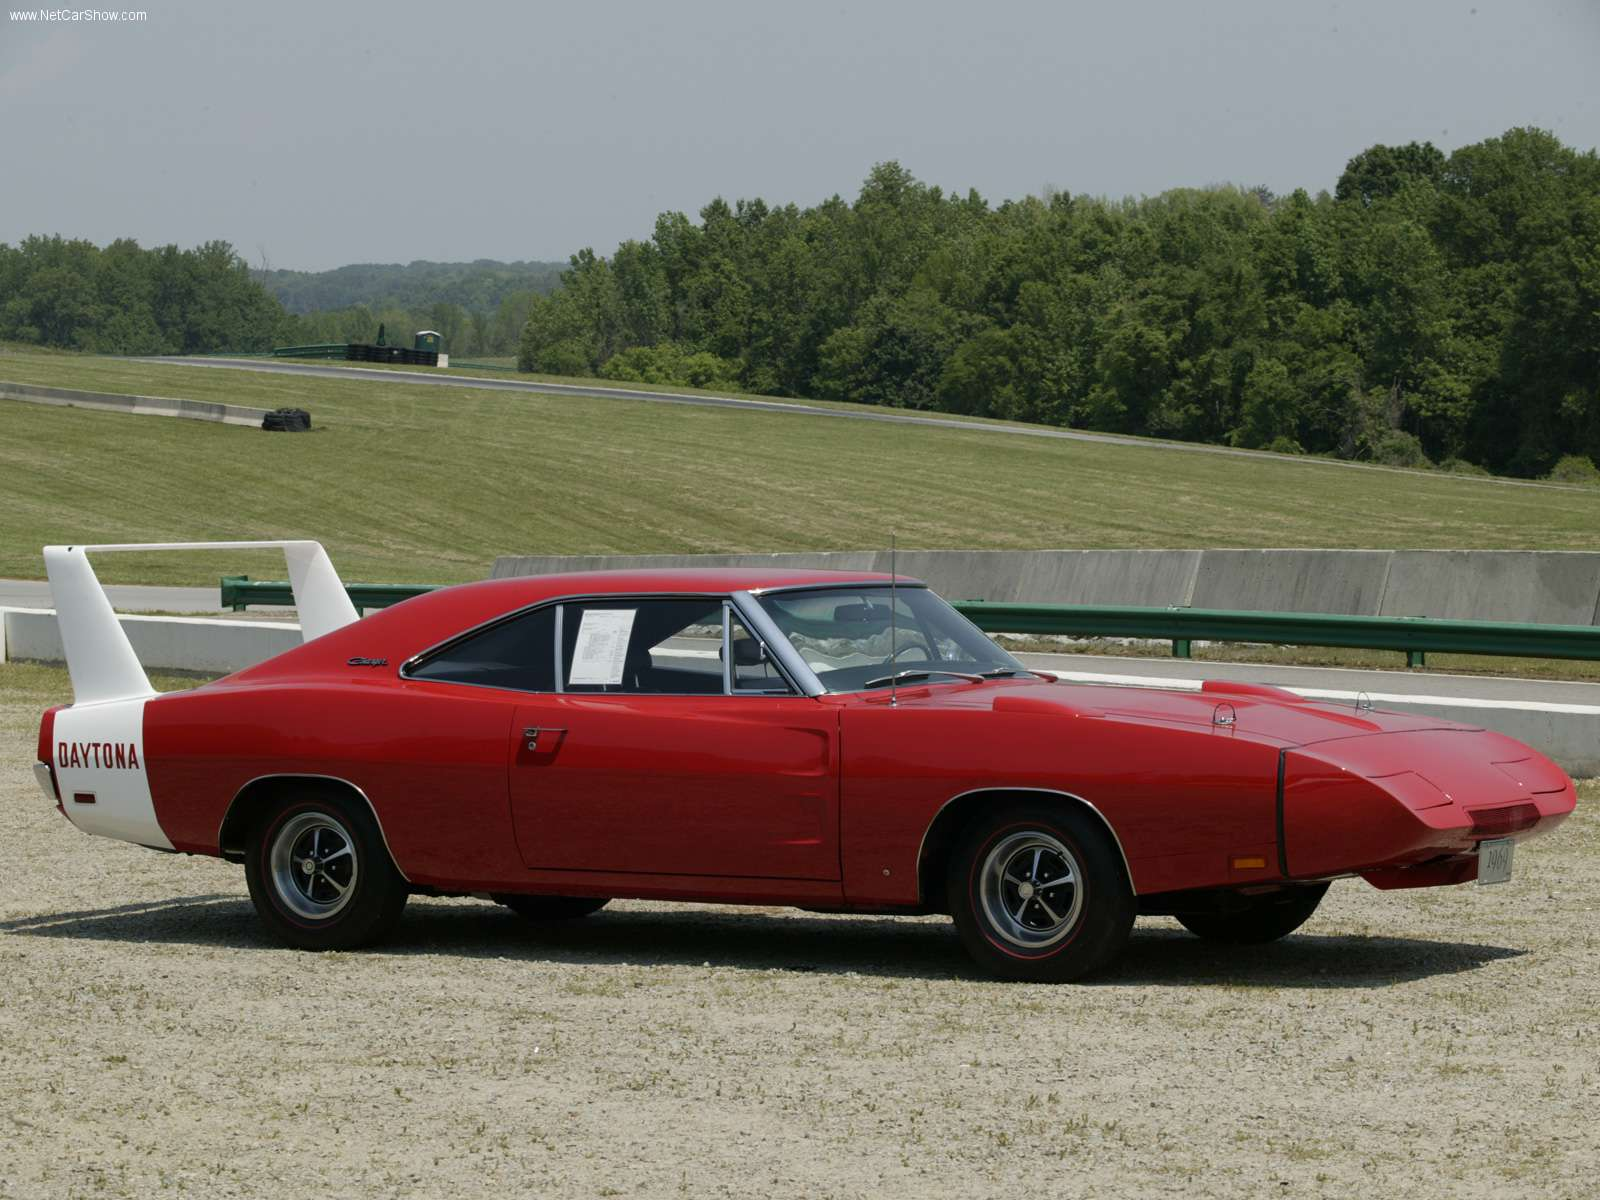 dodge charger daytona coupe 1969 - Dodge Charger 1969